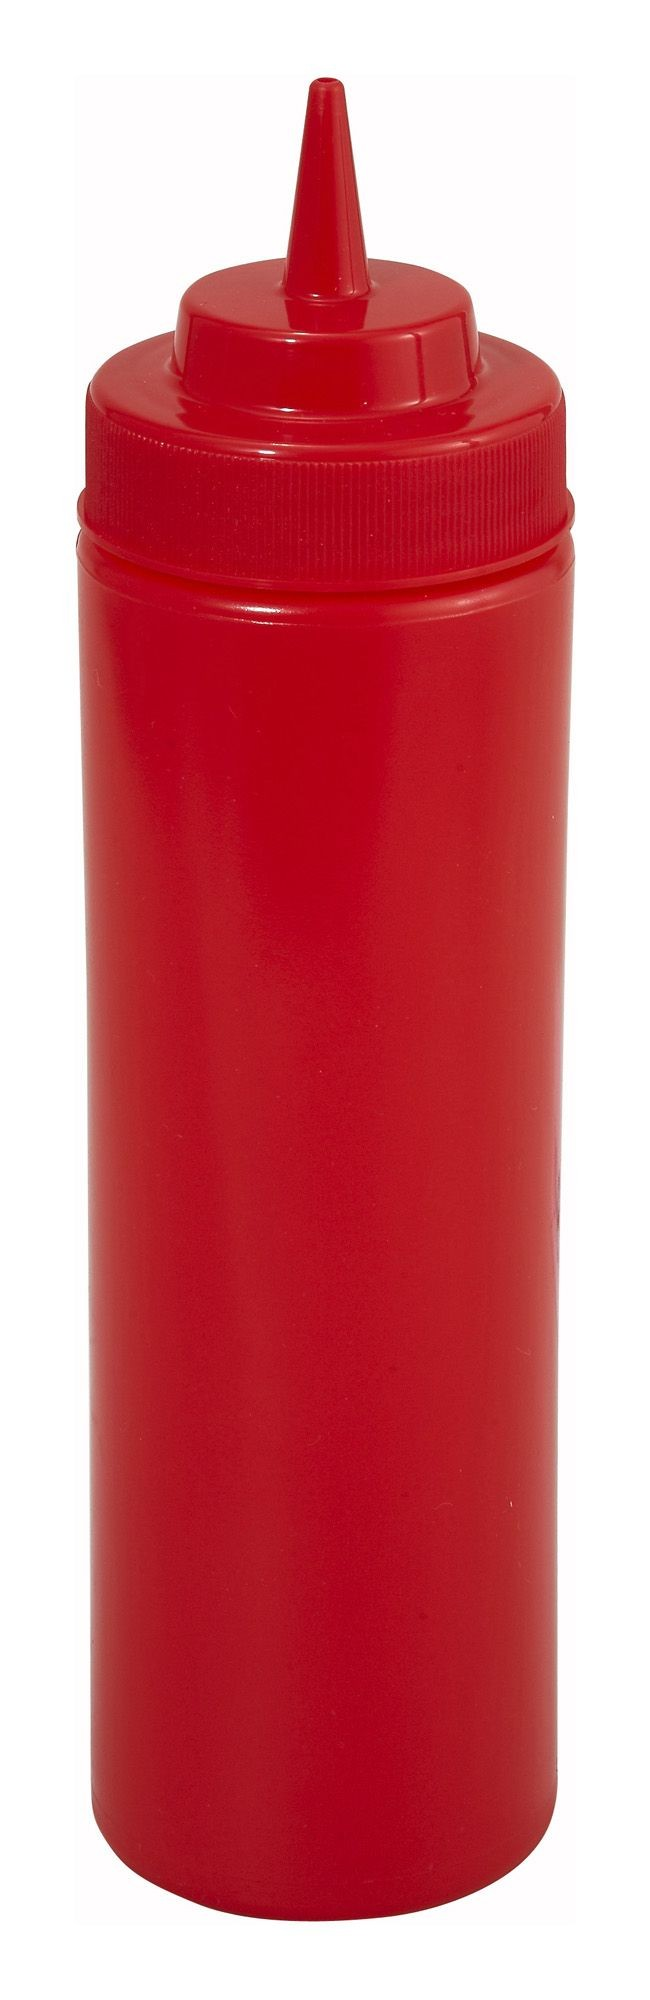 Red Plastic 16 Oz. Wide-Mouth Squeeze Bottle